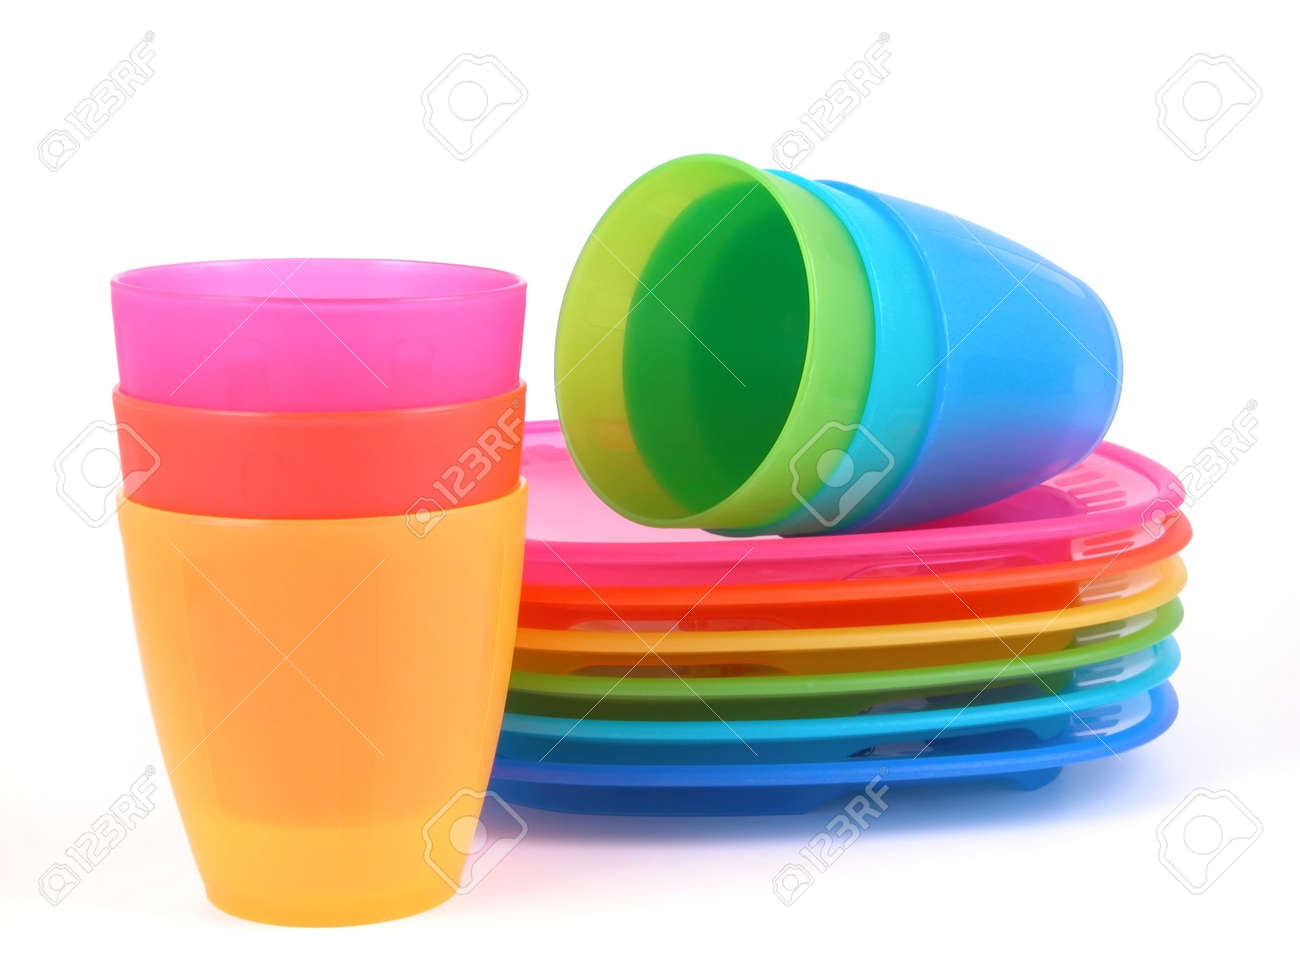 Stack Of Plastic Cups And Plates   Perfect For Picnic Stock Photo   450084